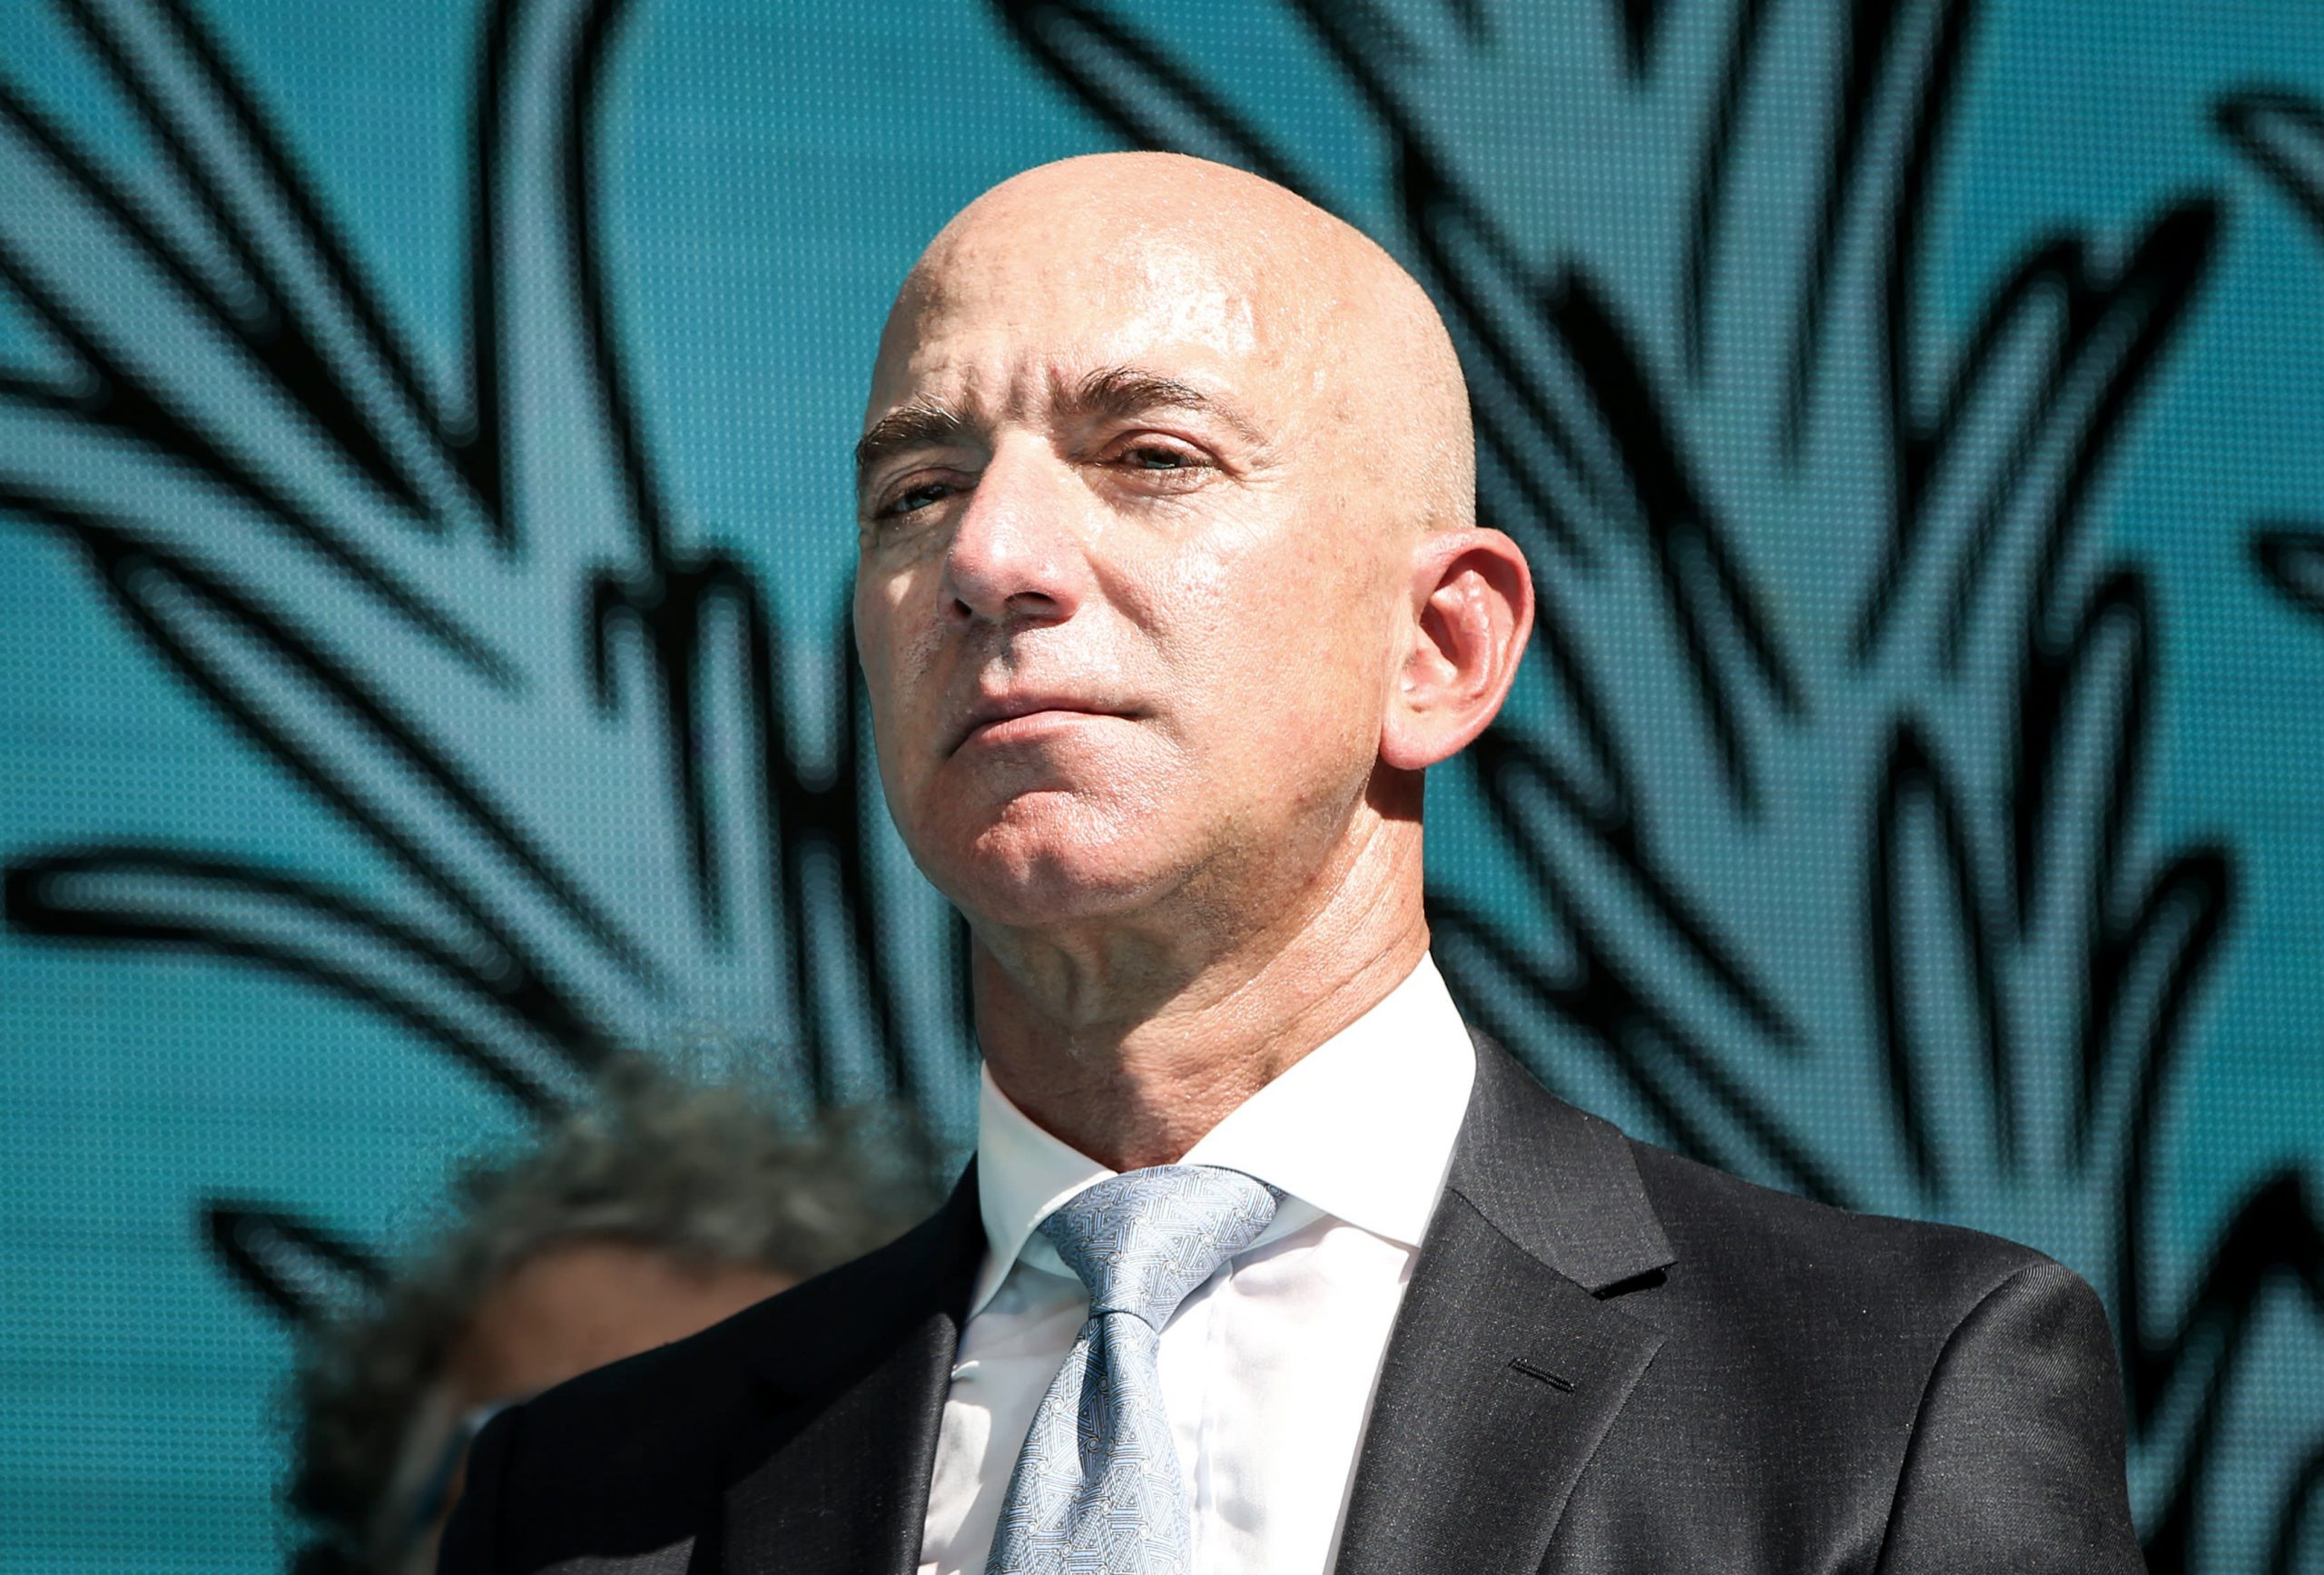 Amazon bans sponsored products related to political campaigns, but you can still find them on the site